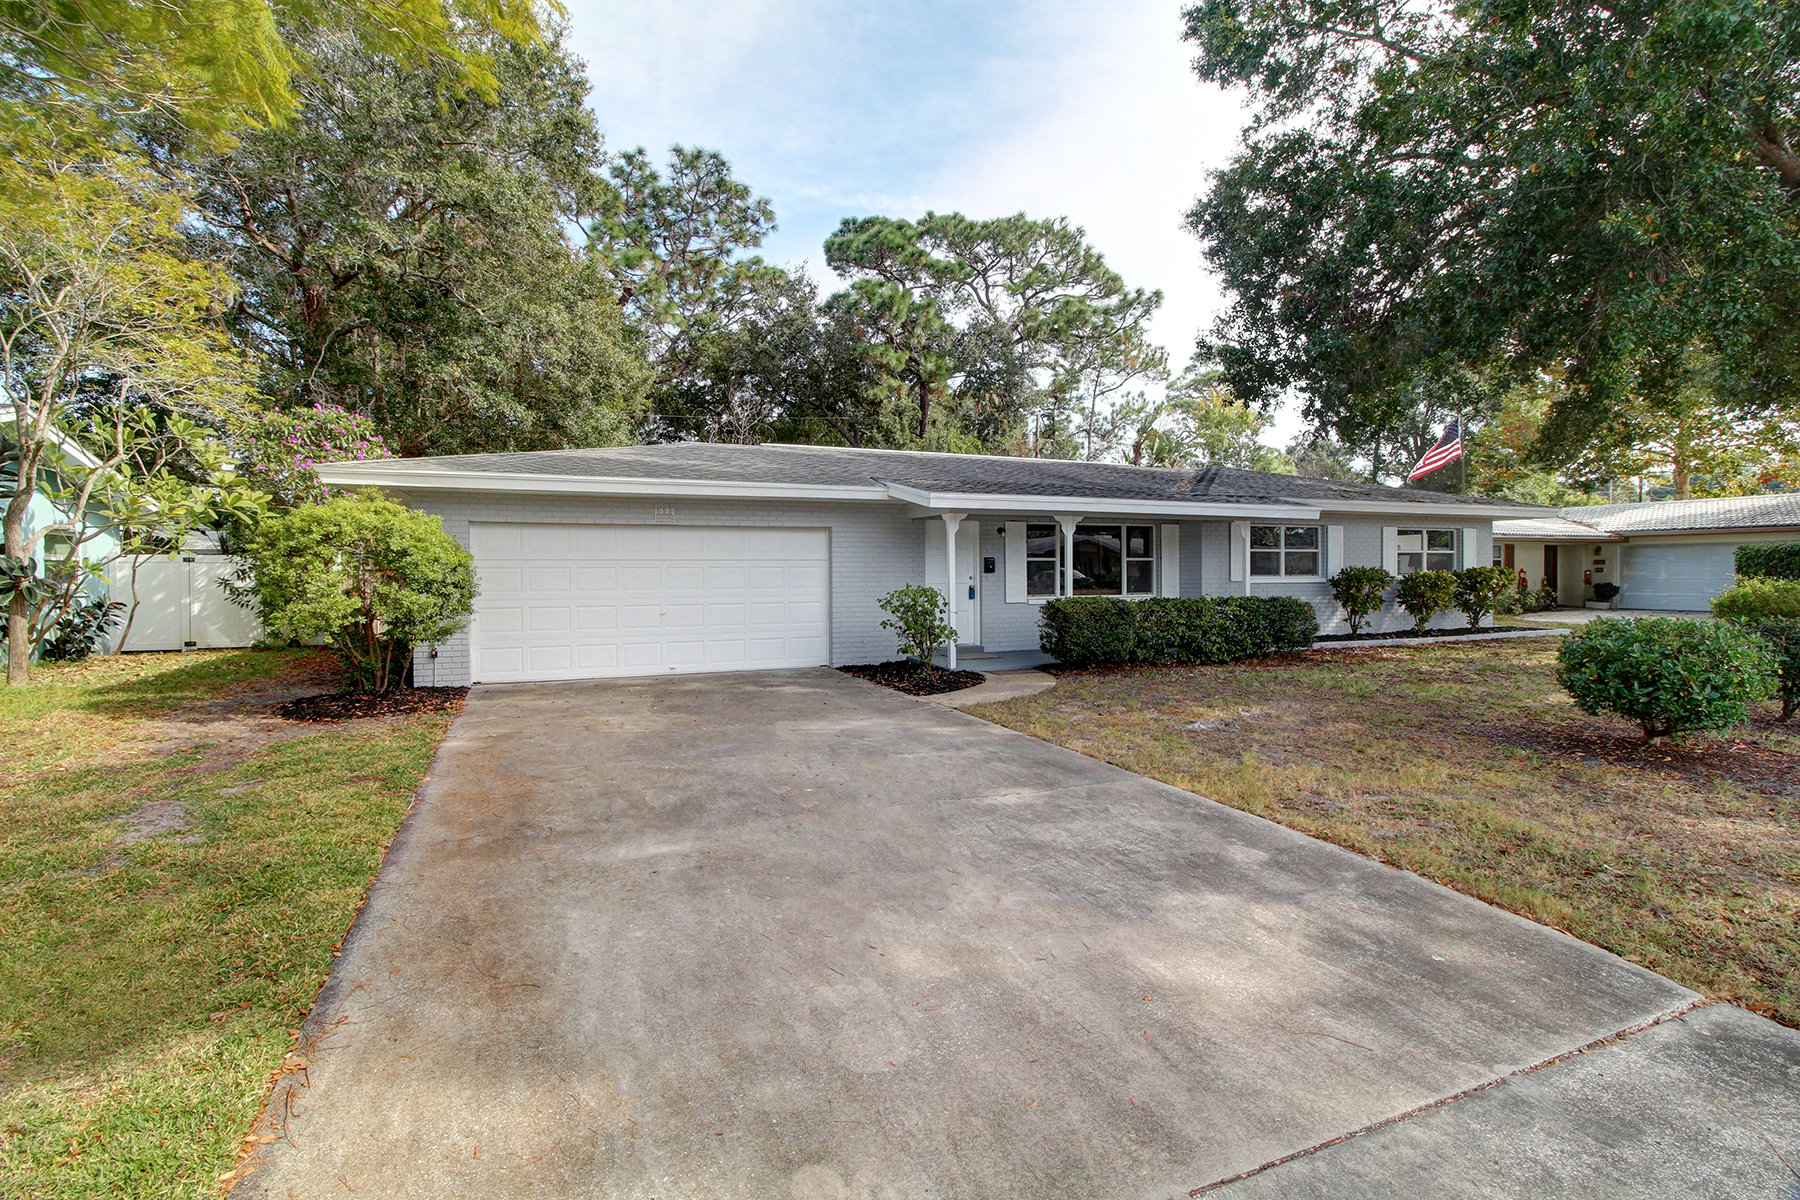 Single Family Home for Sale at LARGO 1093 Porter Dr Largo, Florida, 33771 United States